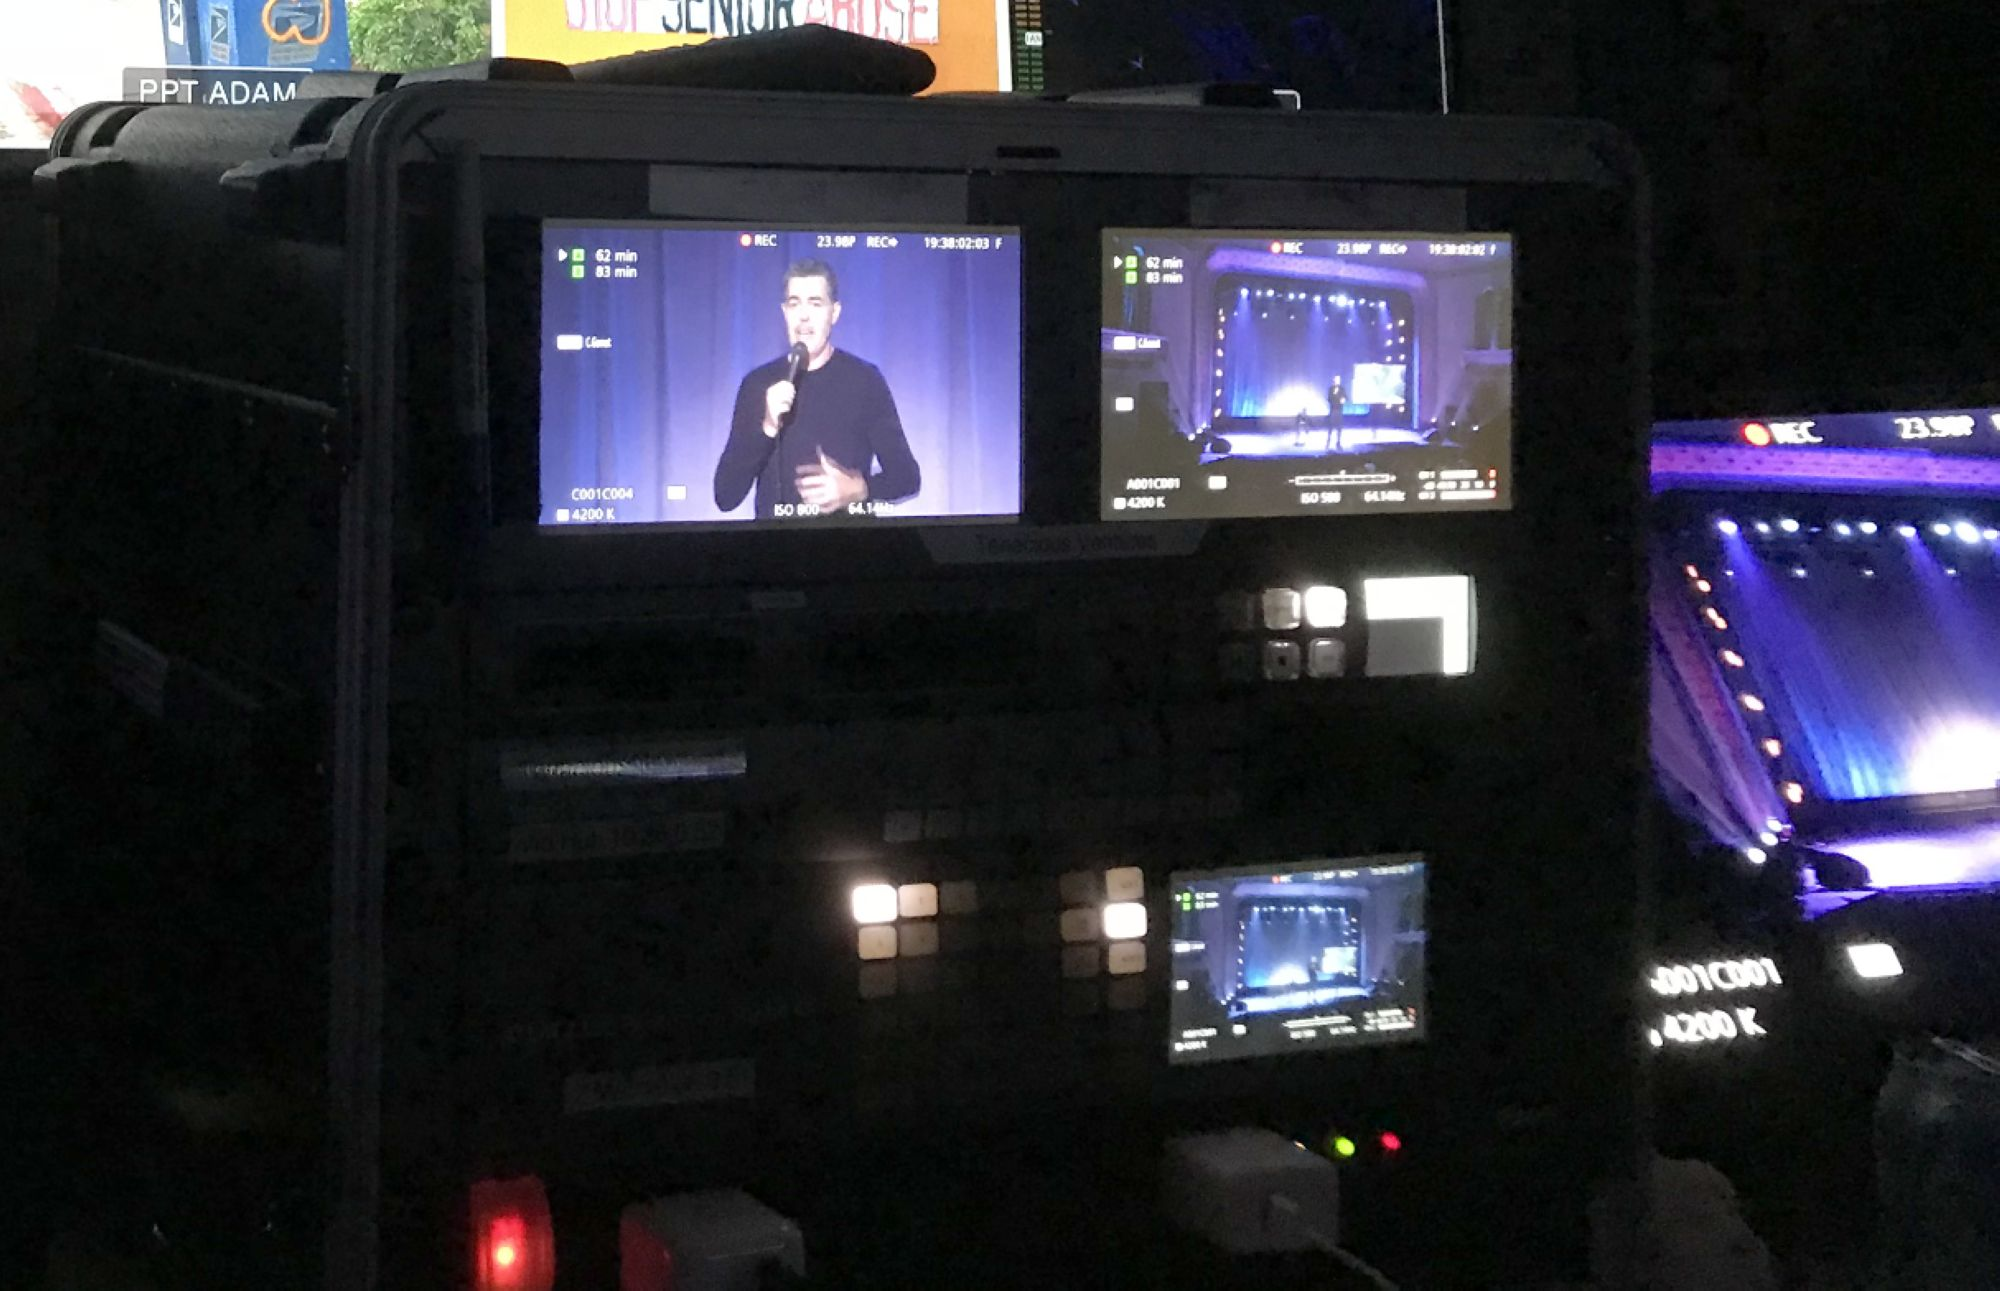 04-Adam-On-Stage-From-Monitors